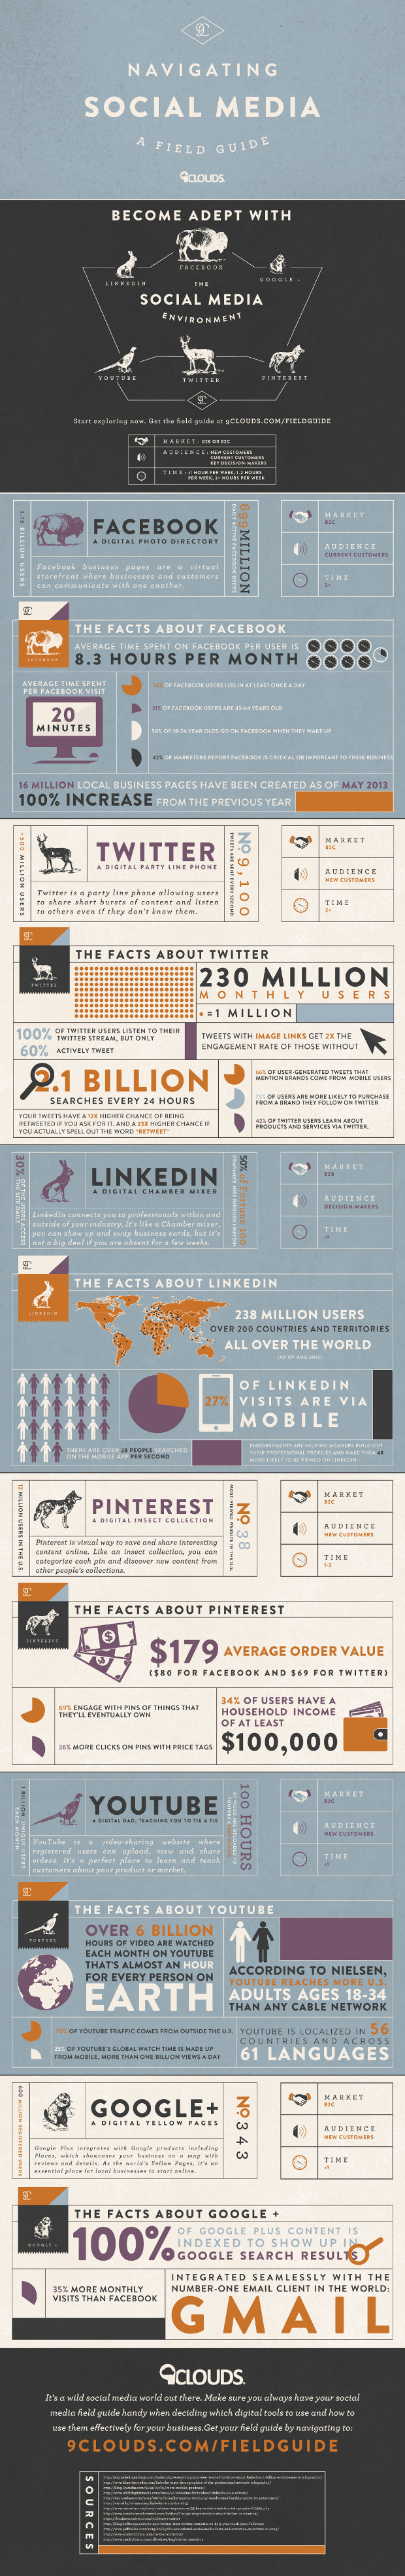 Social media cloud infographic